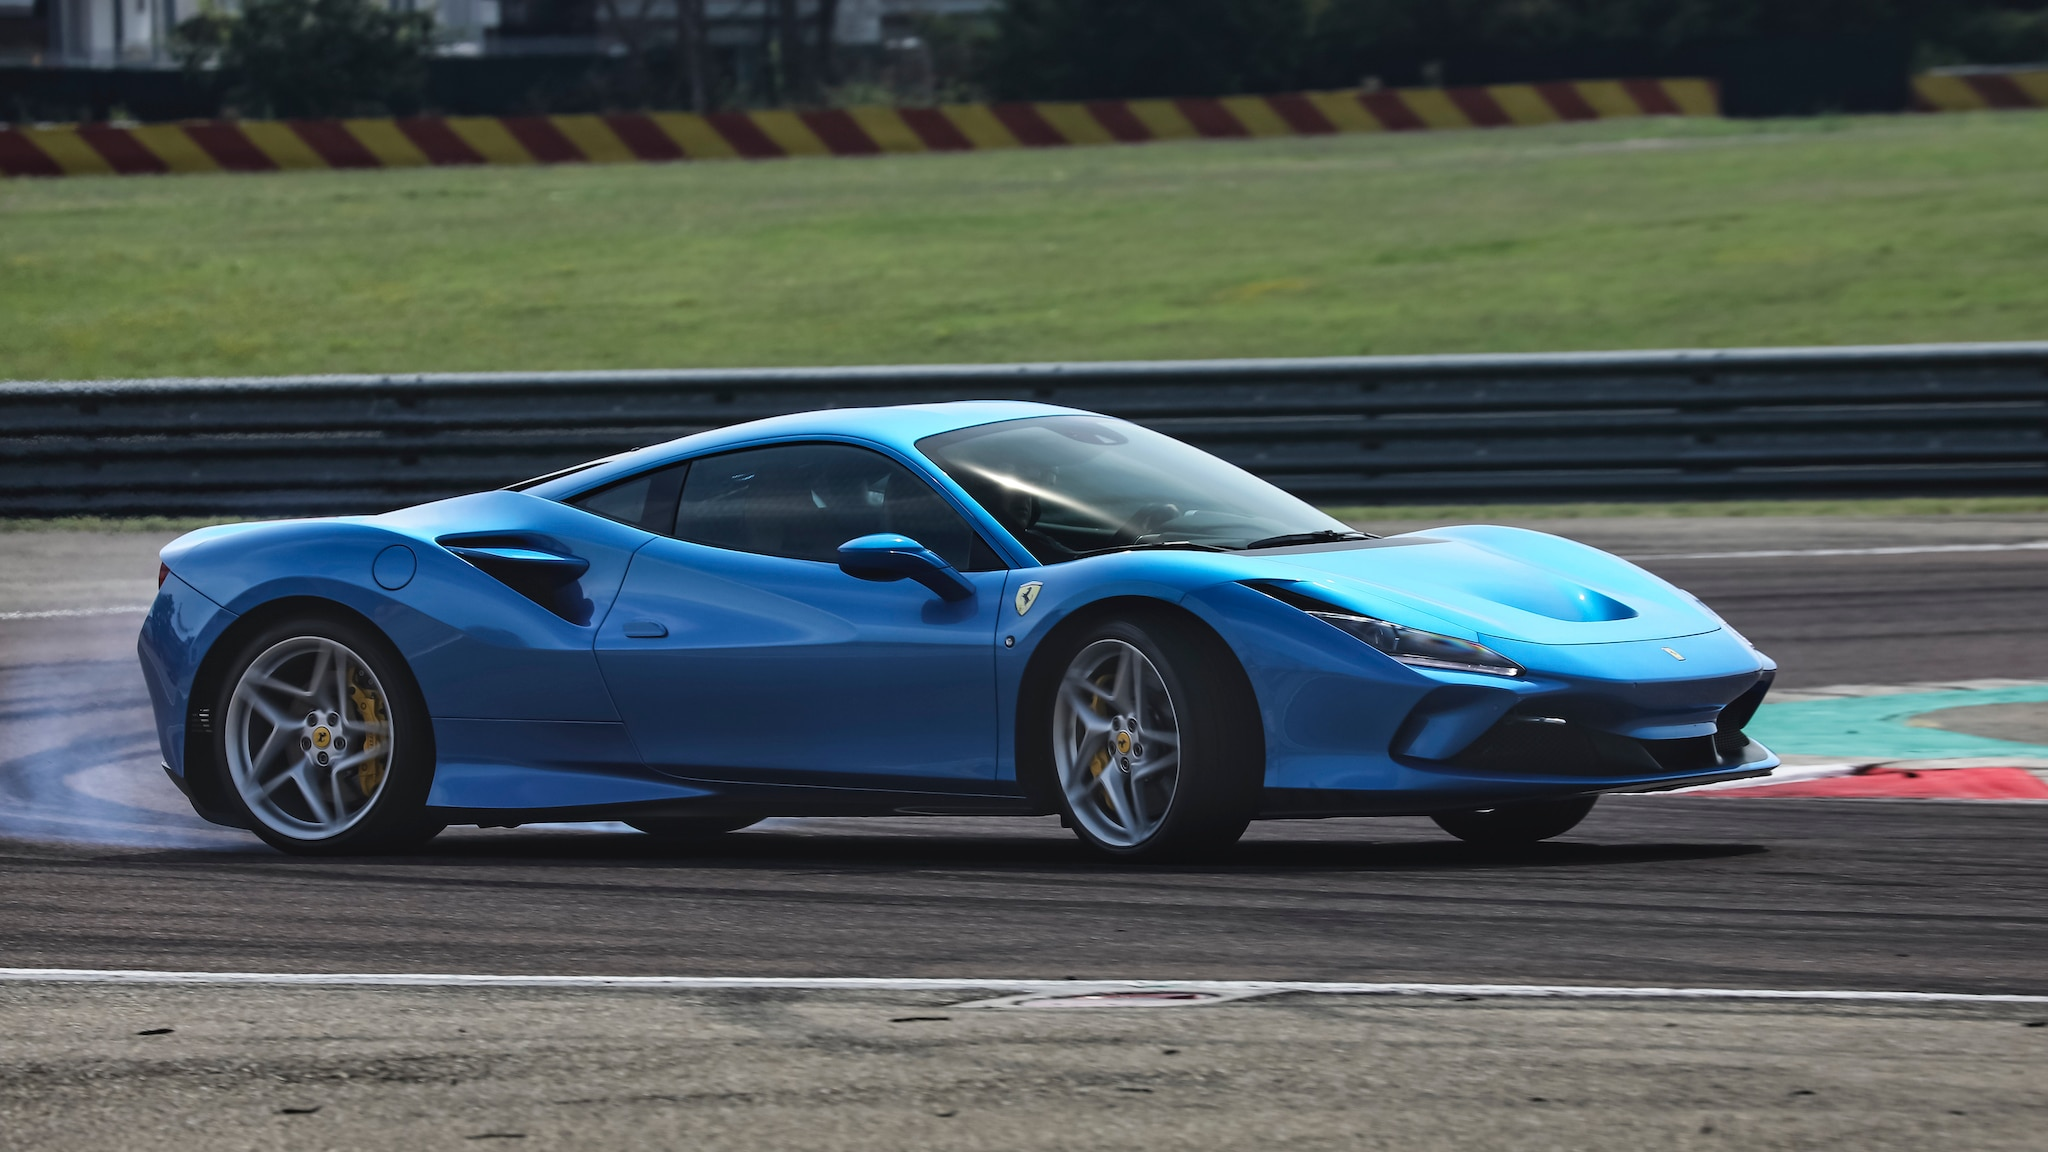 2020 ferrari f8 tributo first drive review absolutely